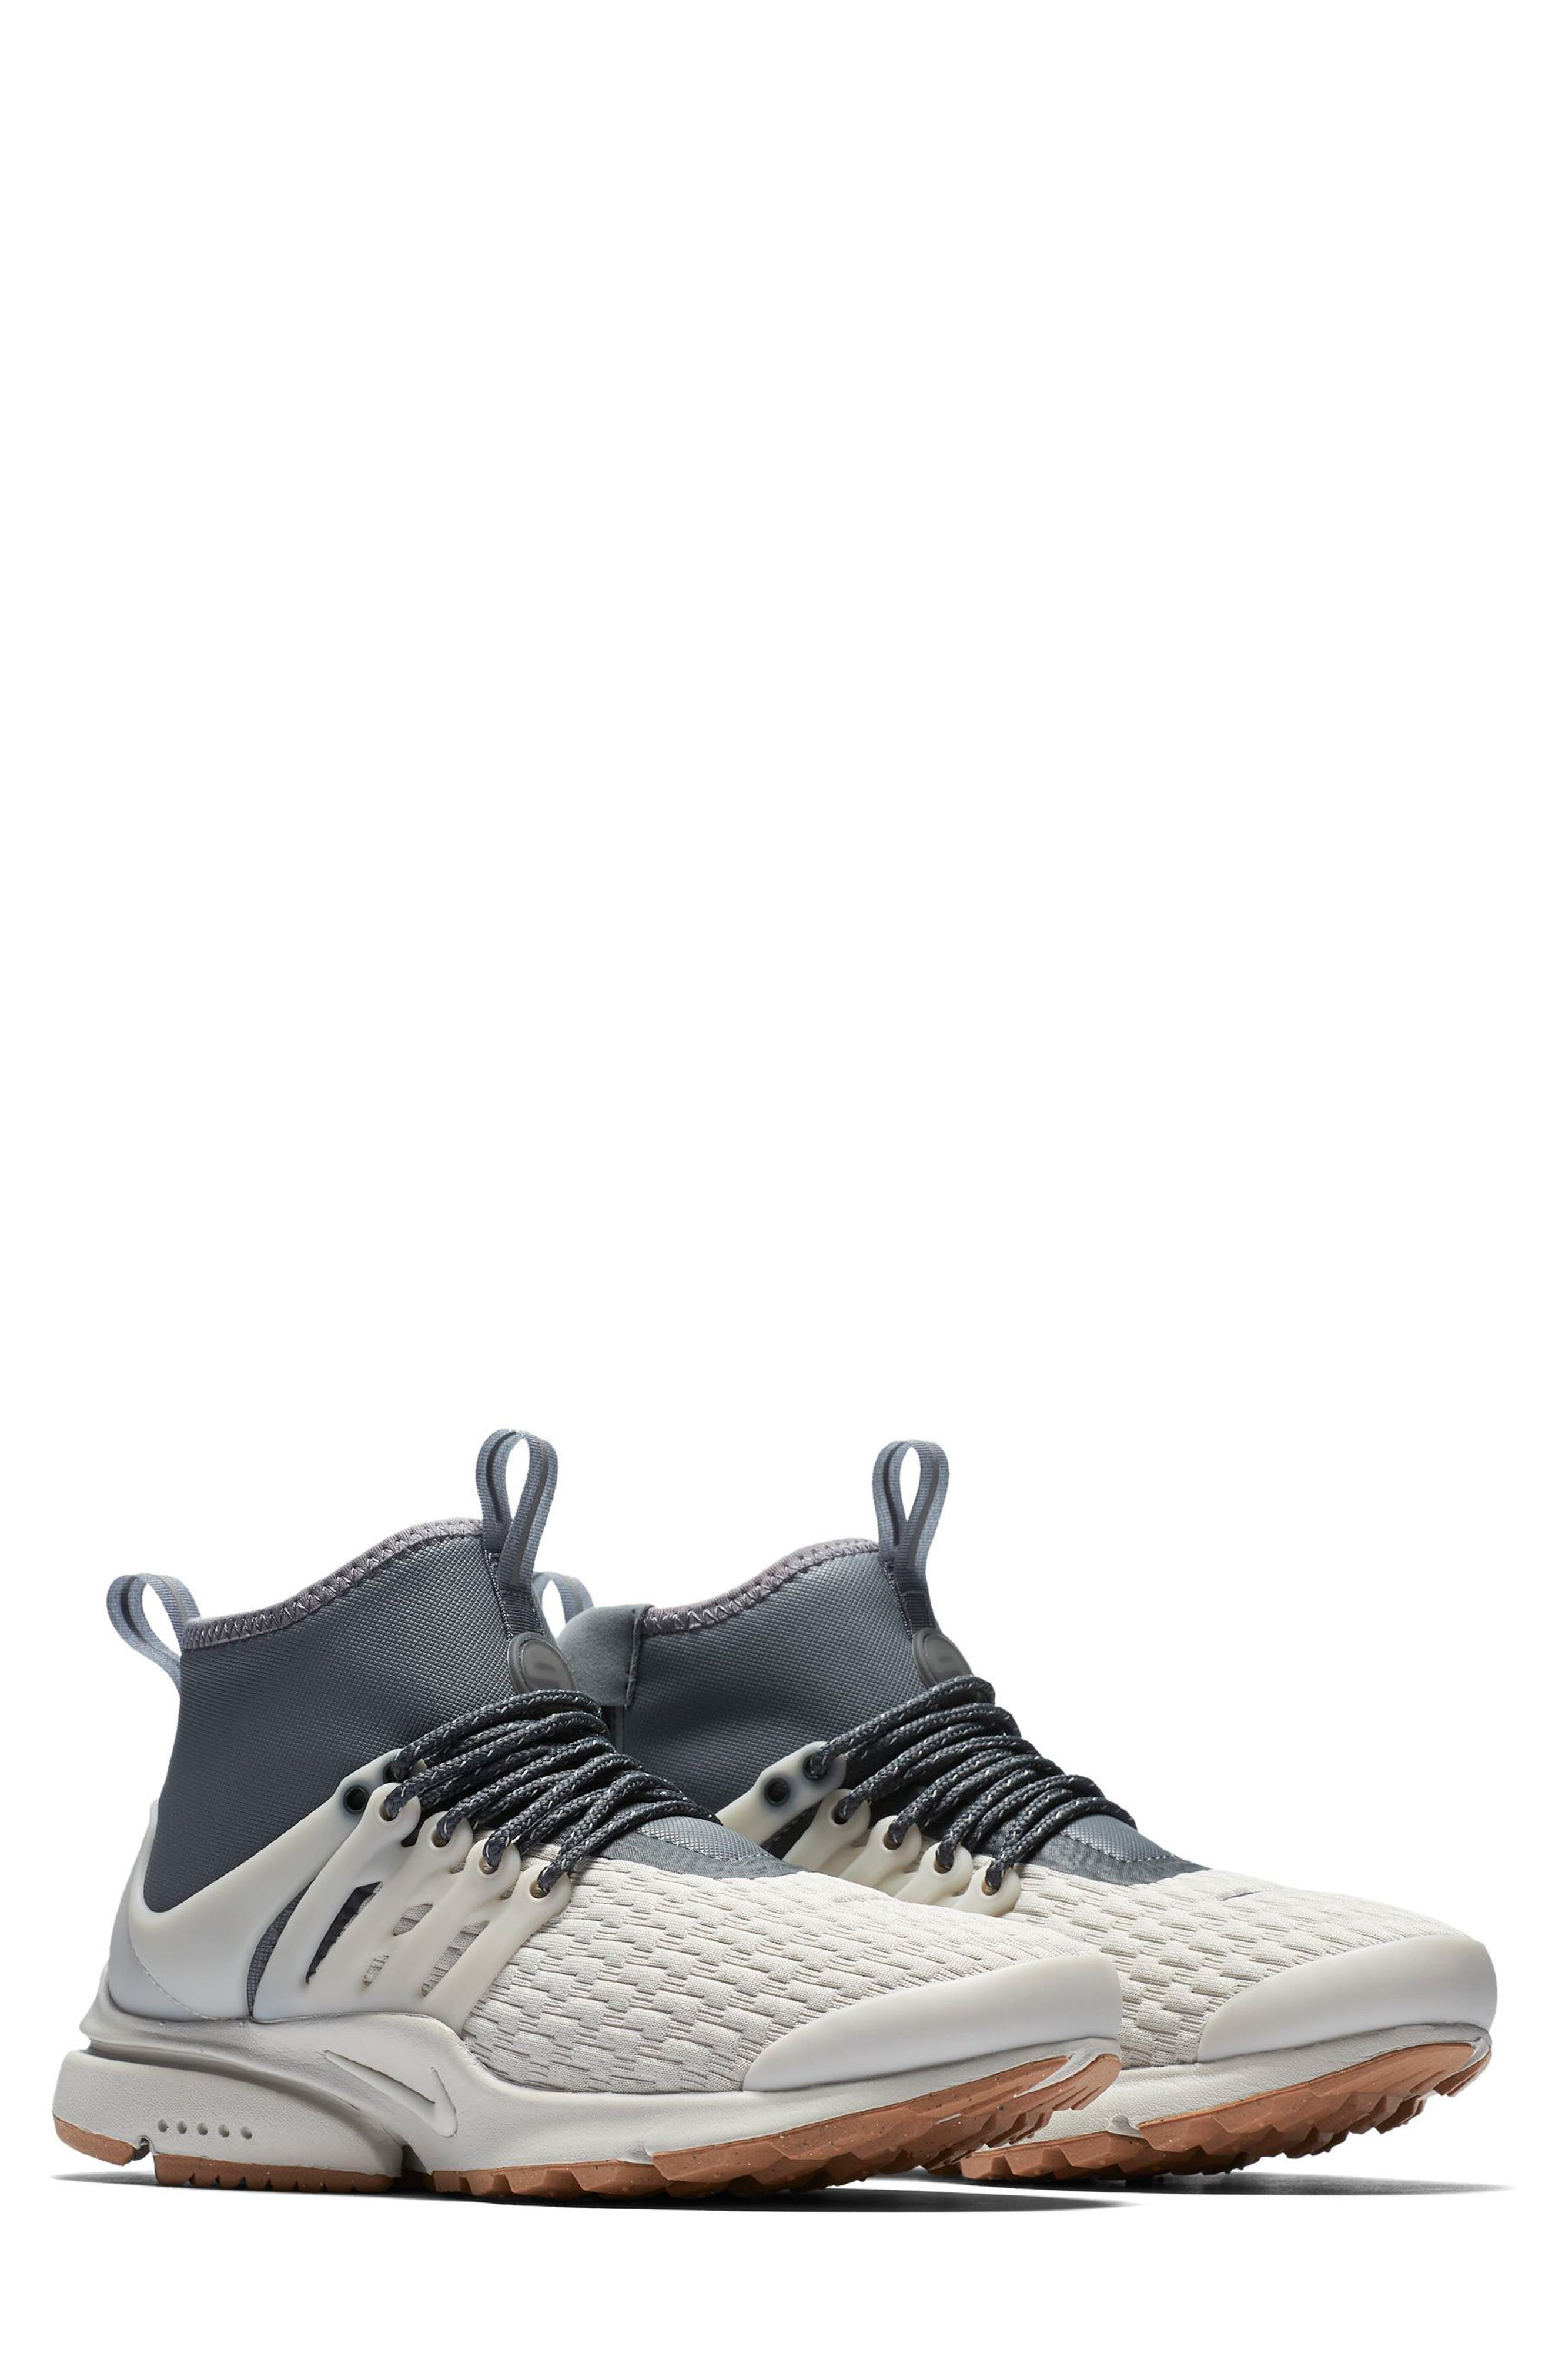 Air Presto Mid Utility Water Repellent Sneaker,                         Main,                         color, LIGHT BONE/ COOL GREY